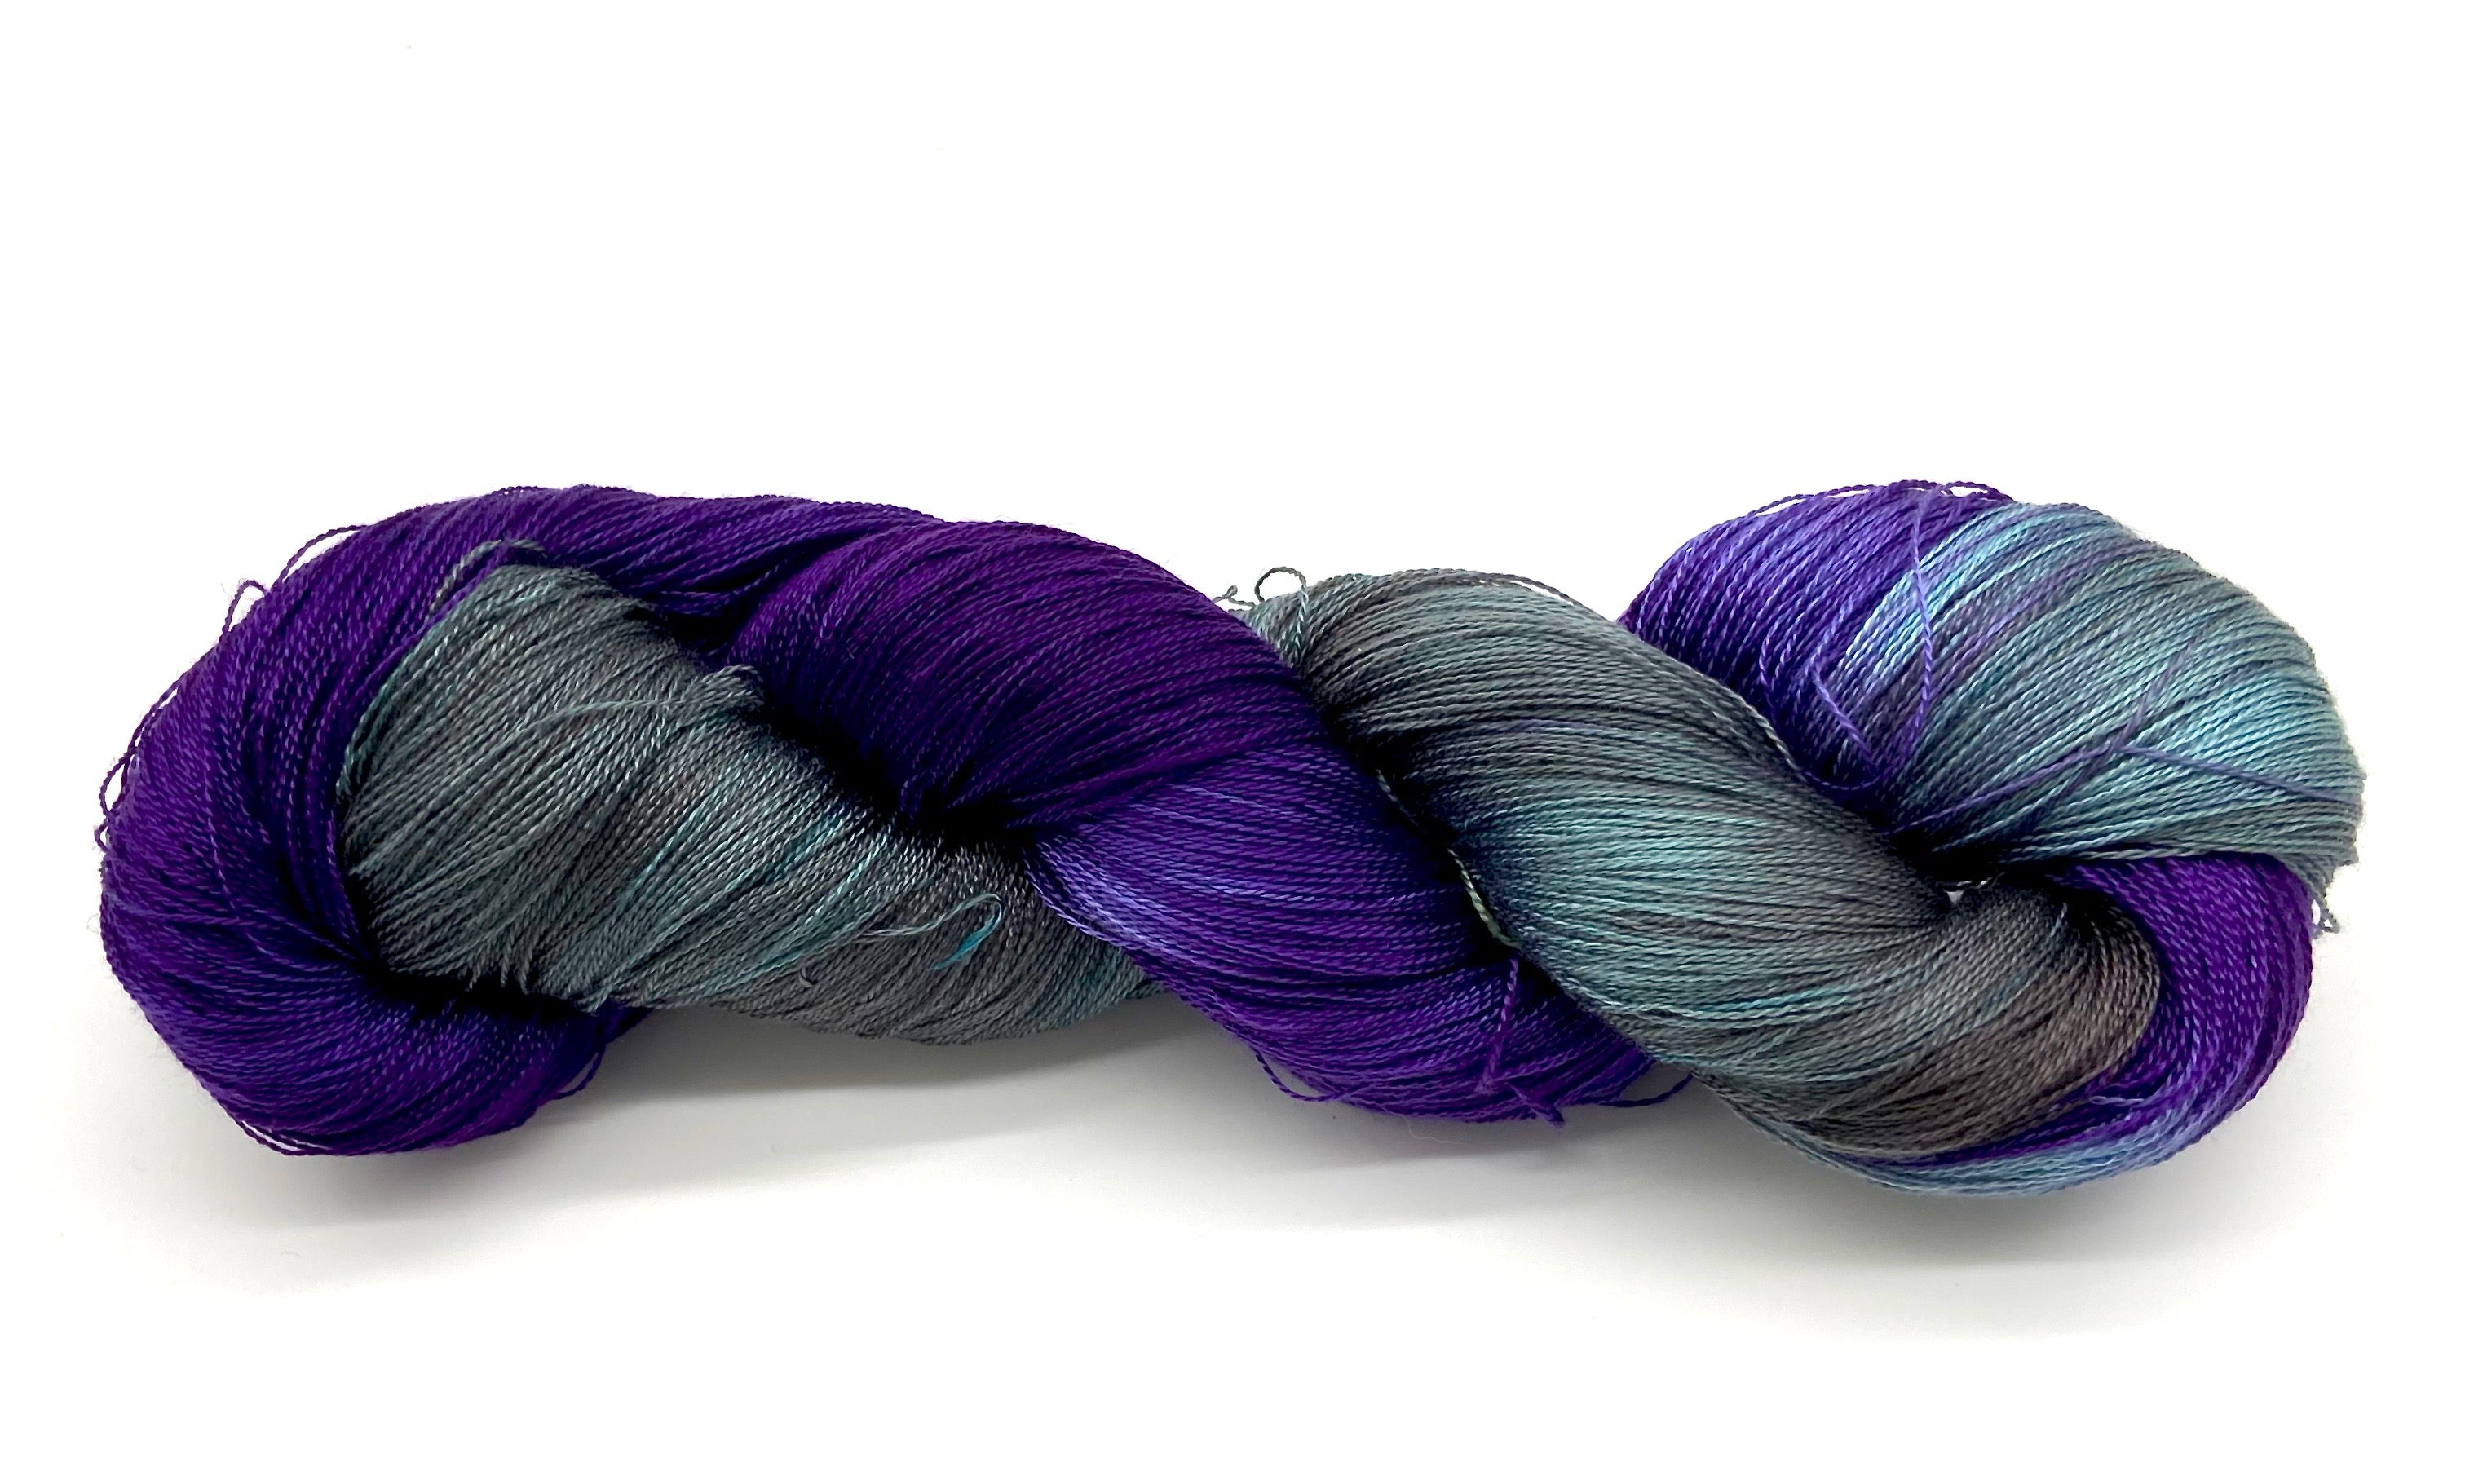 Hand Painted Tencel 10/2 Skeins - Sydney Sogol, Hand dyed Yarn, hand-painted-tencel-10-2-skeins, eco-friendly yarn, Hand dyed tencel yarn, hand dyed yarn, hand painted yarn, tencel yarn, weav